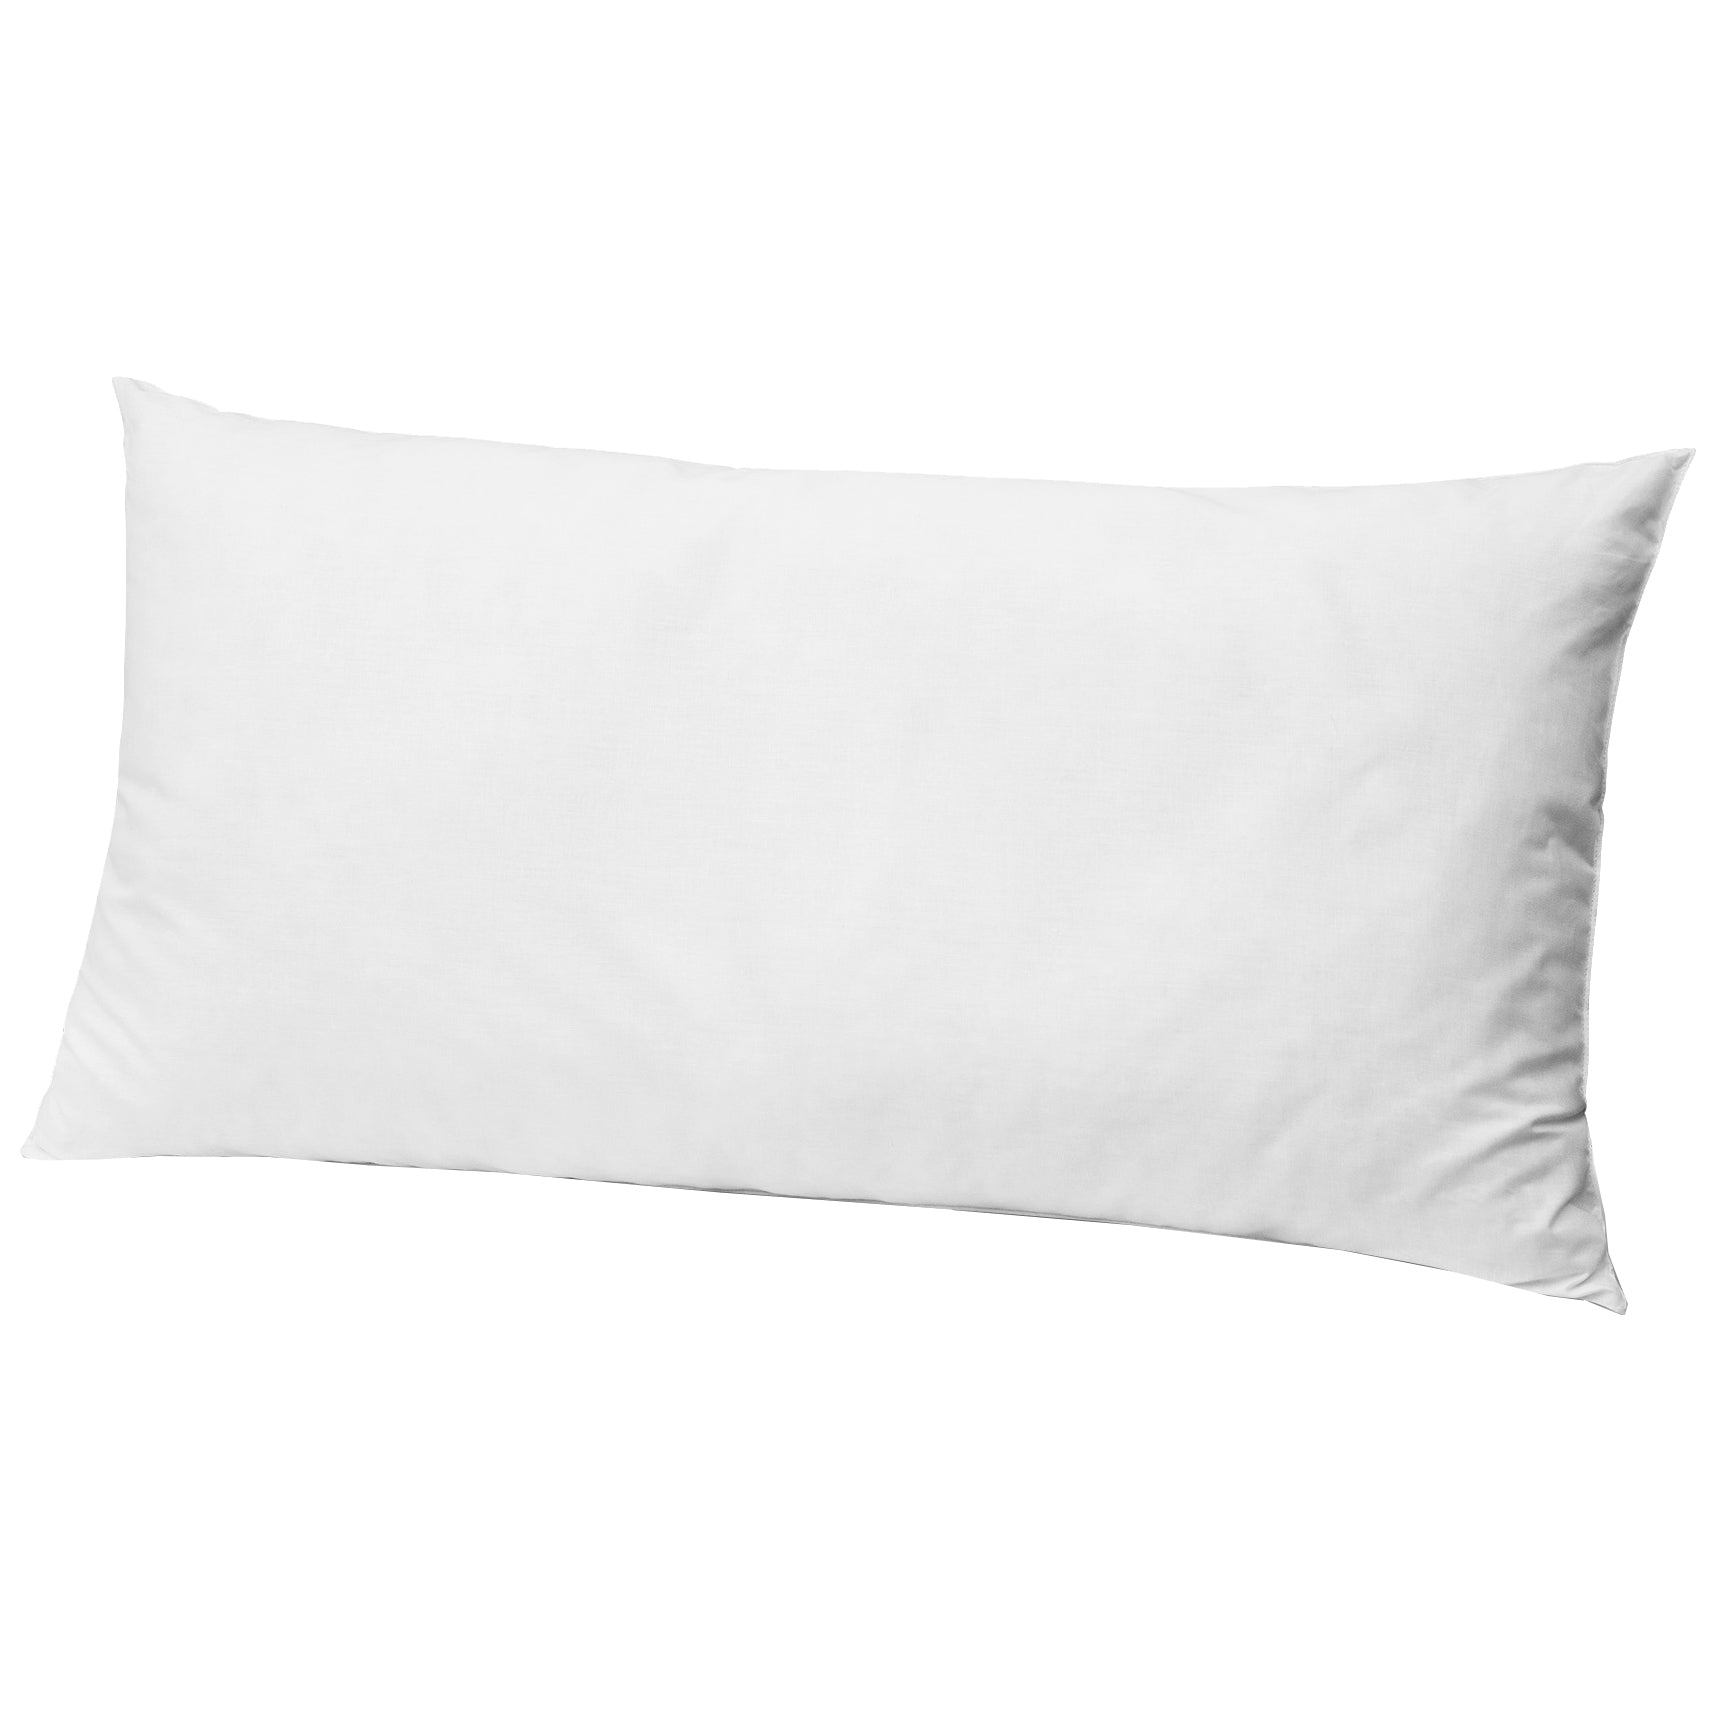 King Size Hotel Pillow